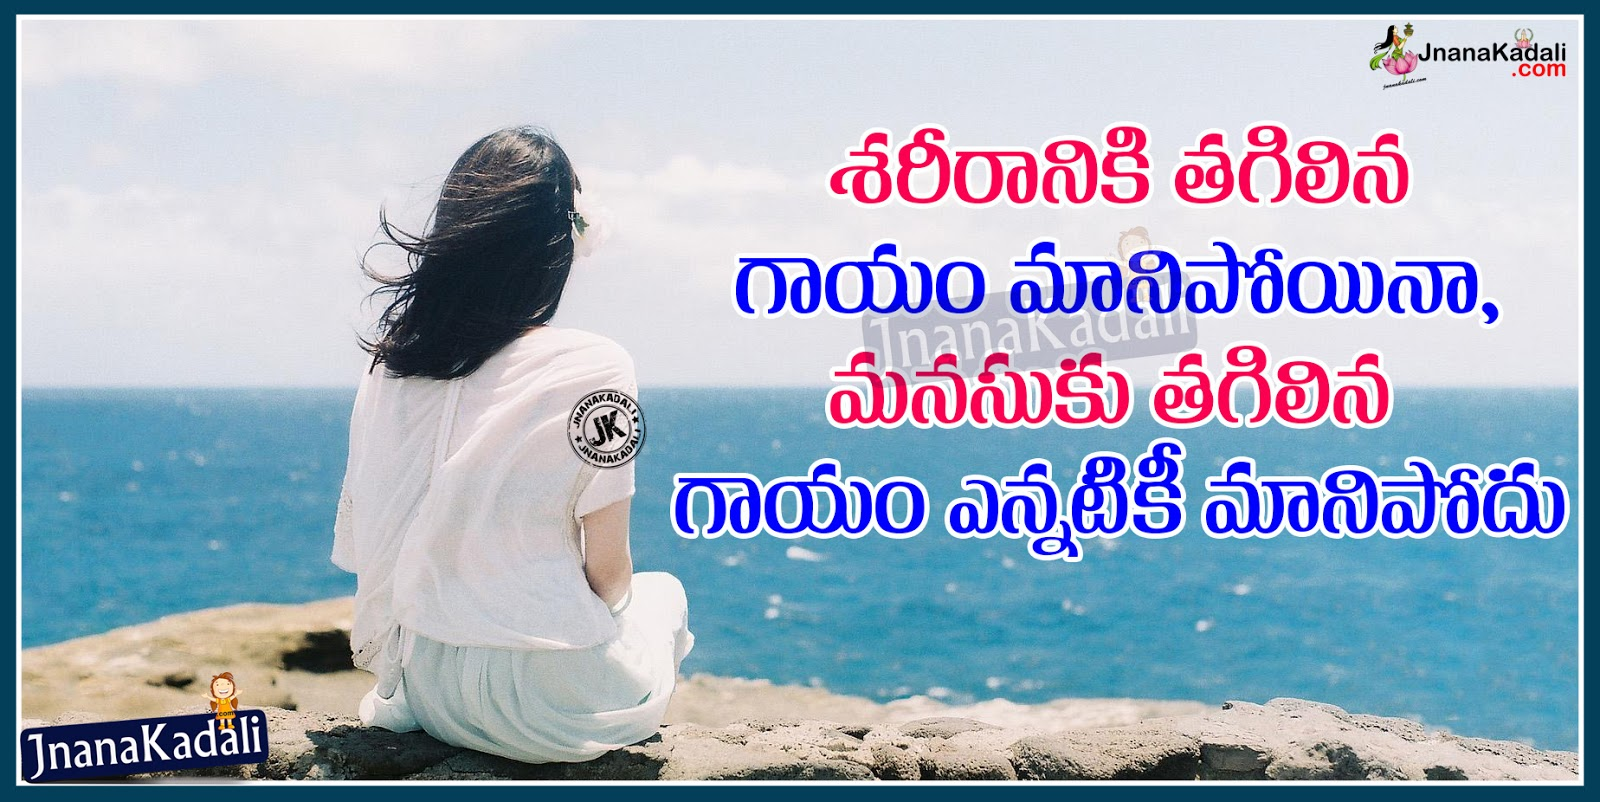 ... Love Quotes online, Telugu Rain Quotes with Sad Messages, Great Telugu